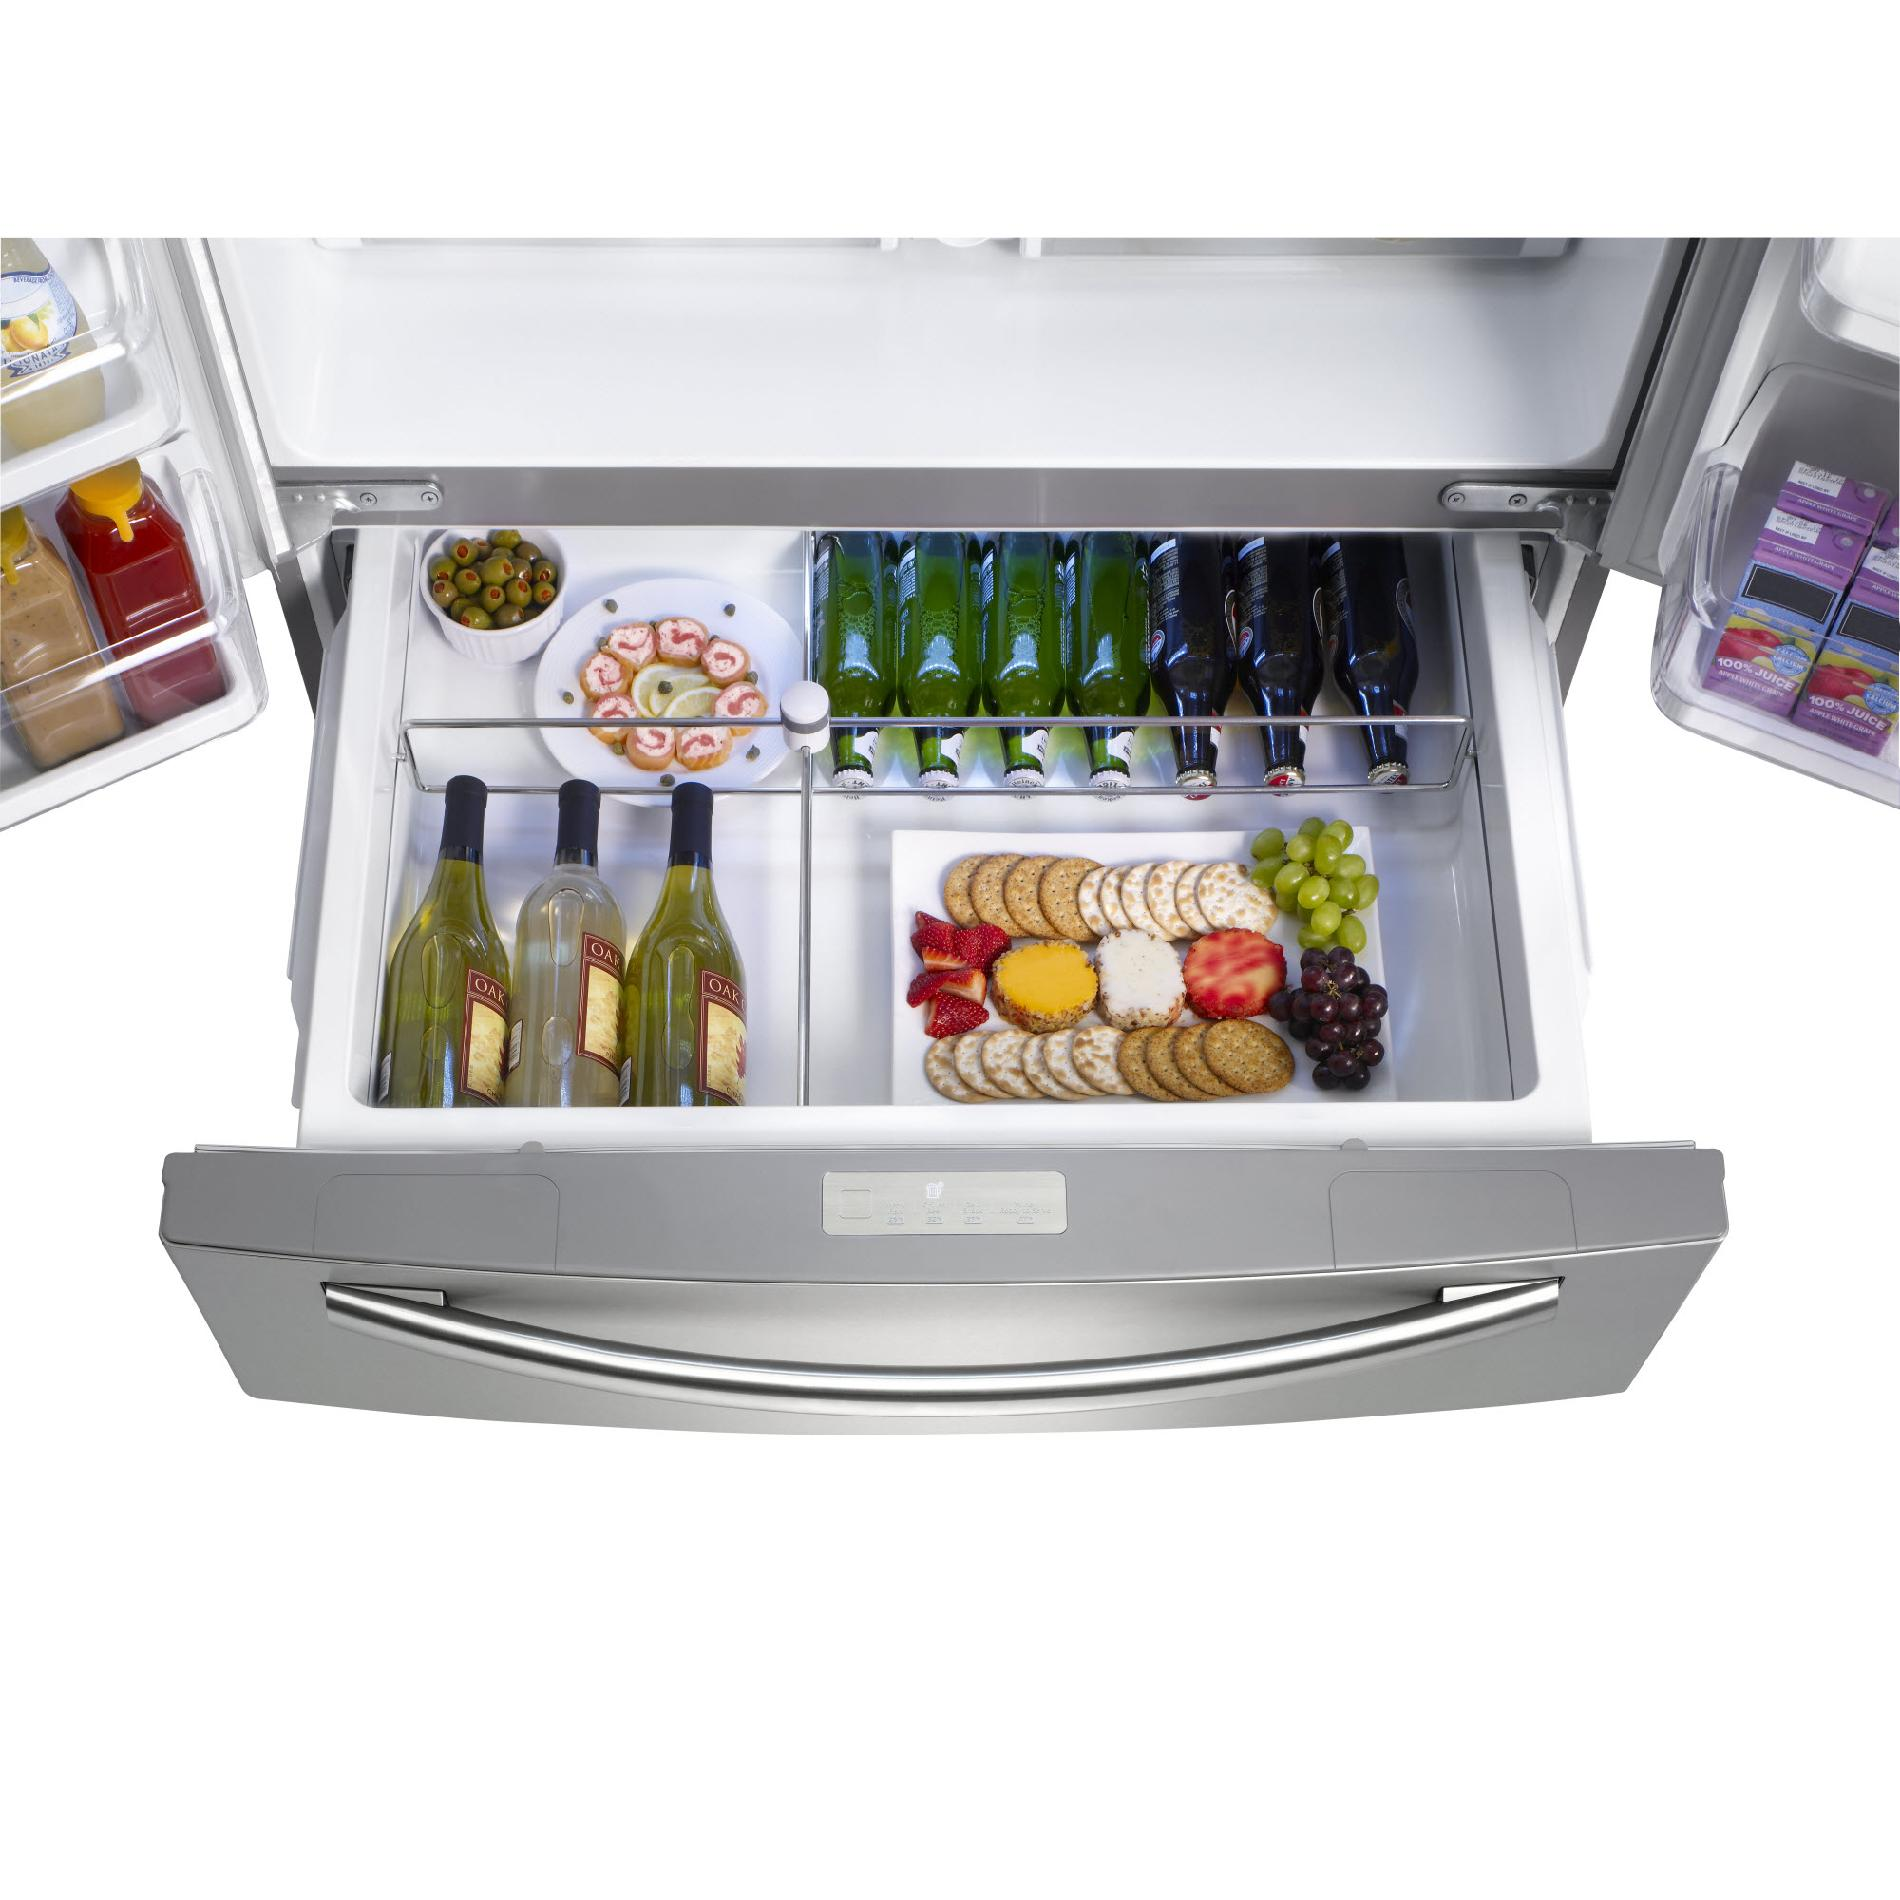 Samsung 28 cu. ft. French-Door Refrigerator w/ Counter-Height Drawer - White